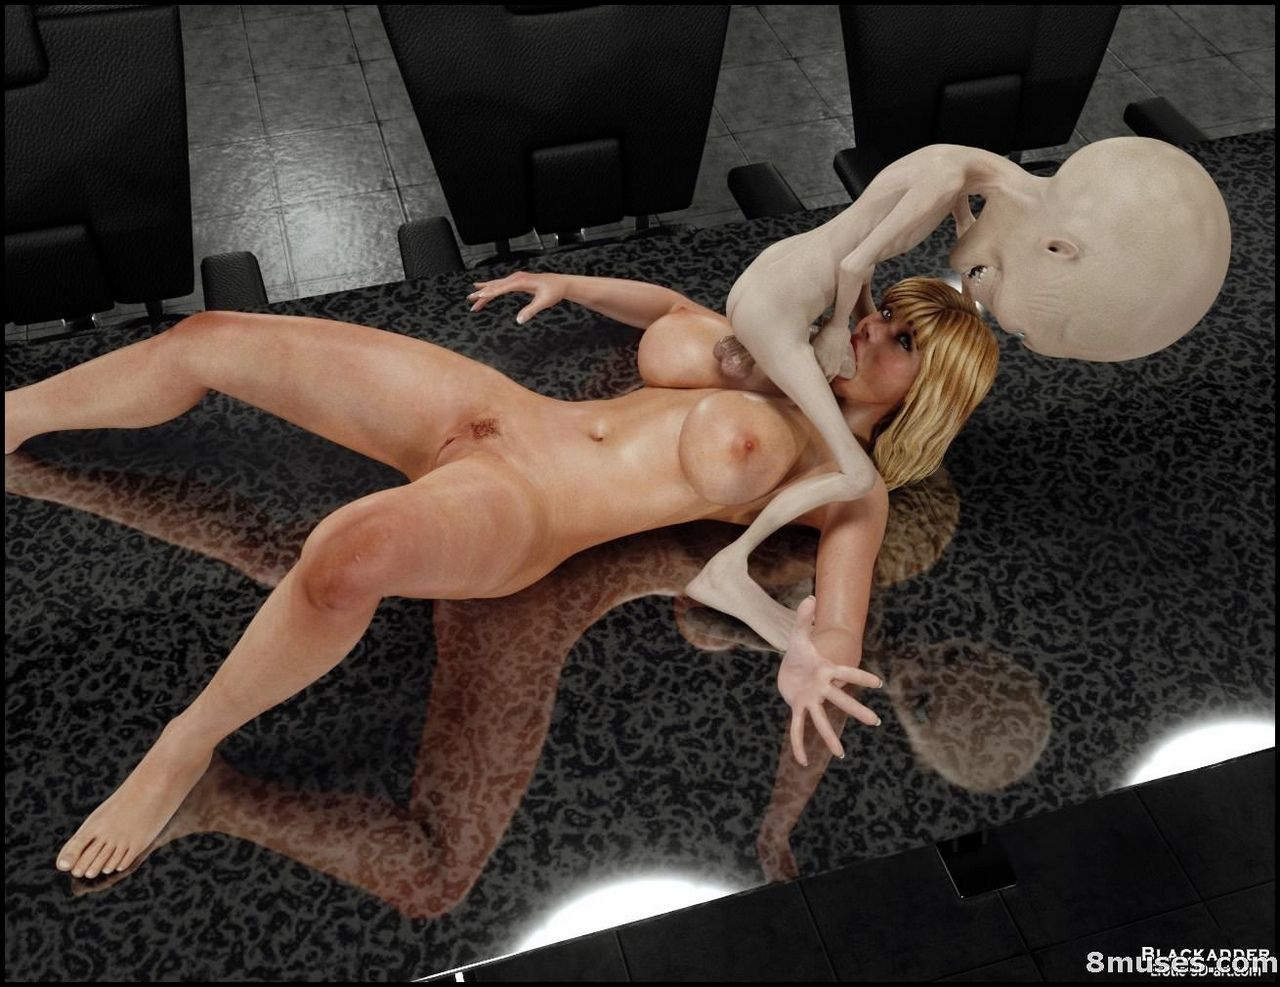 Free 3d monster alien sex 3gp video sexy photos